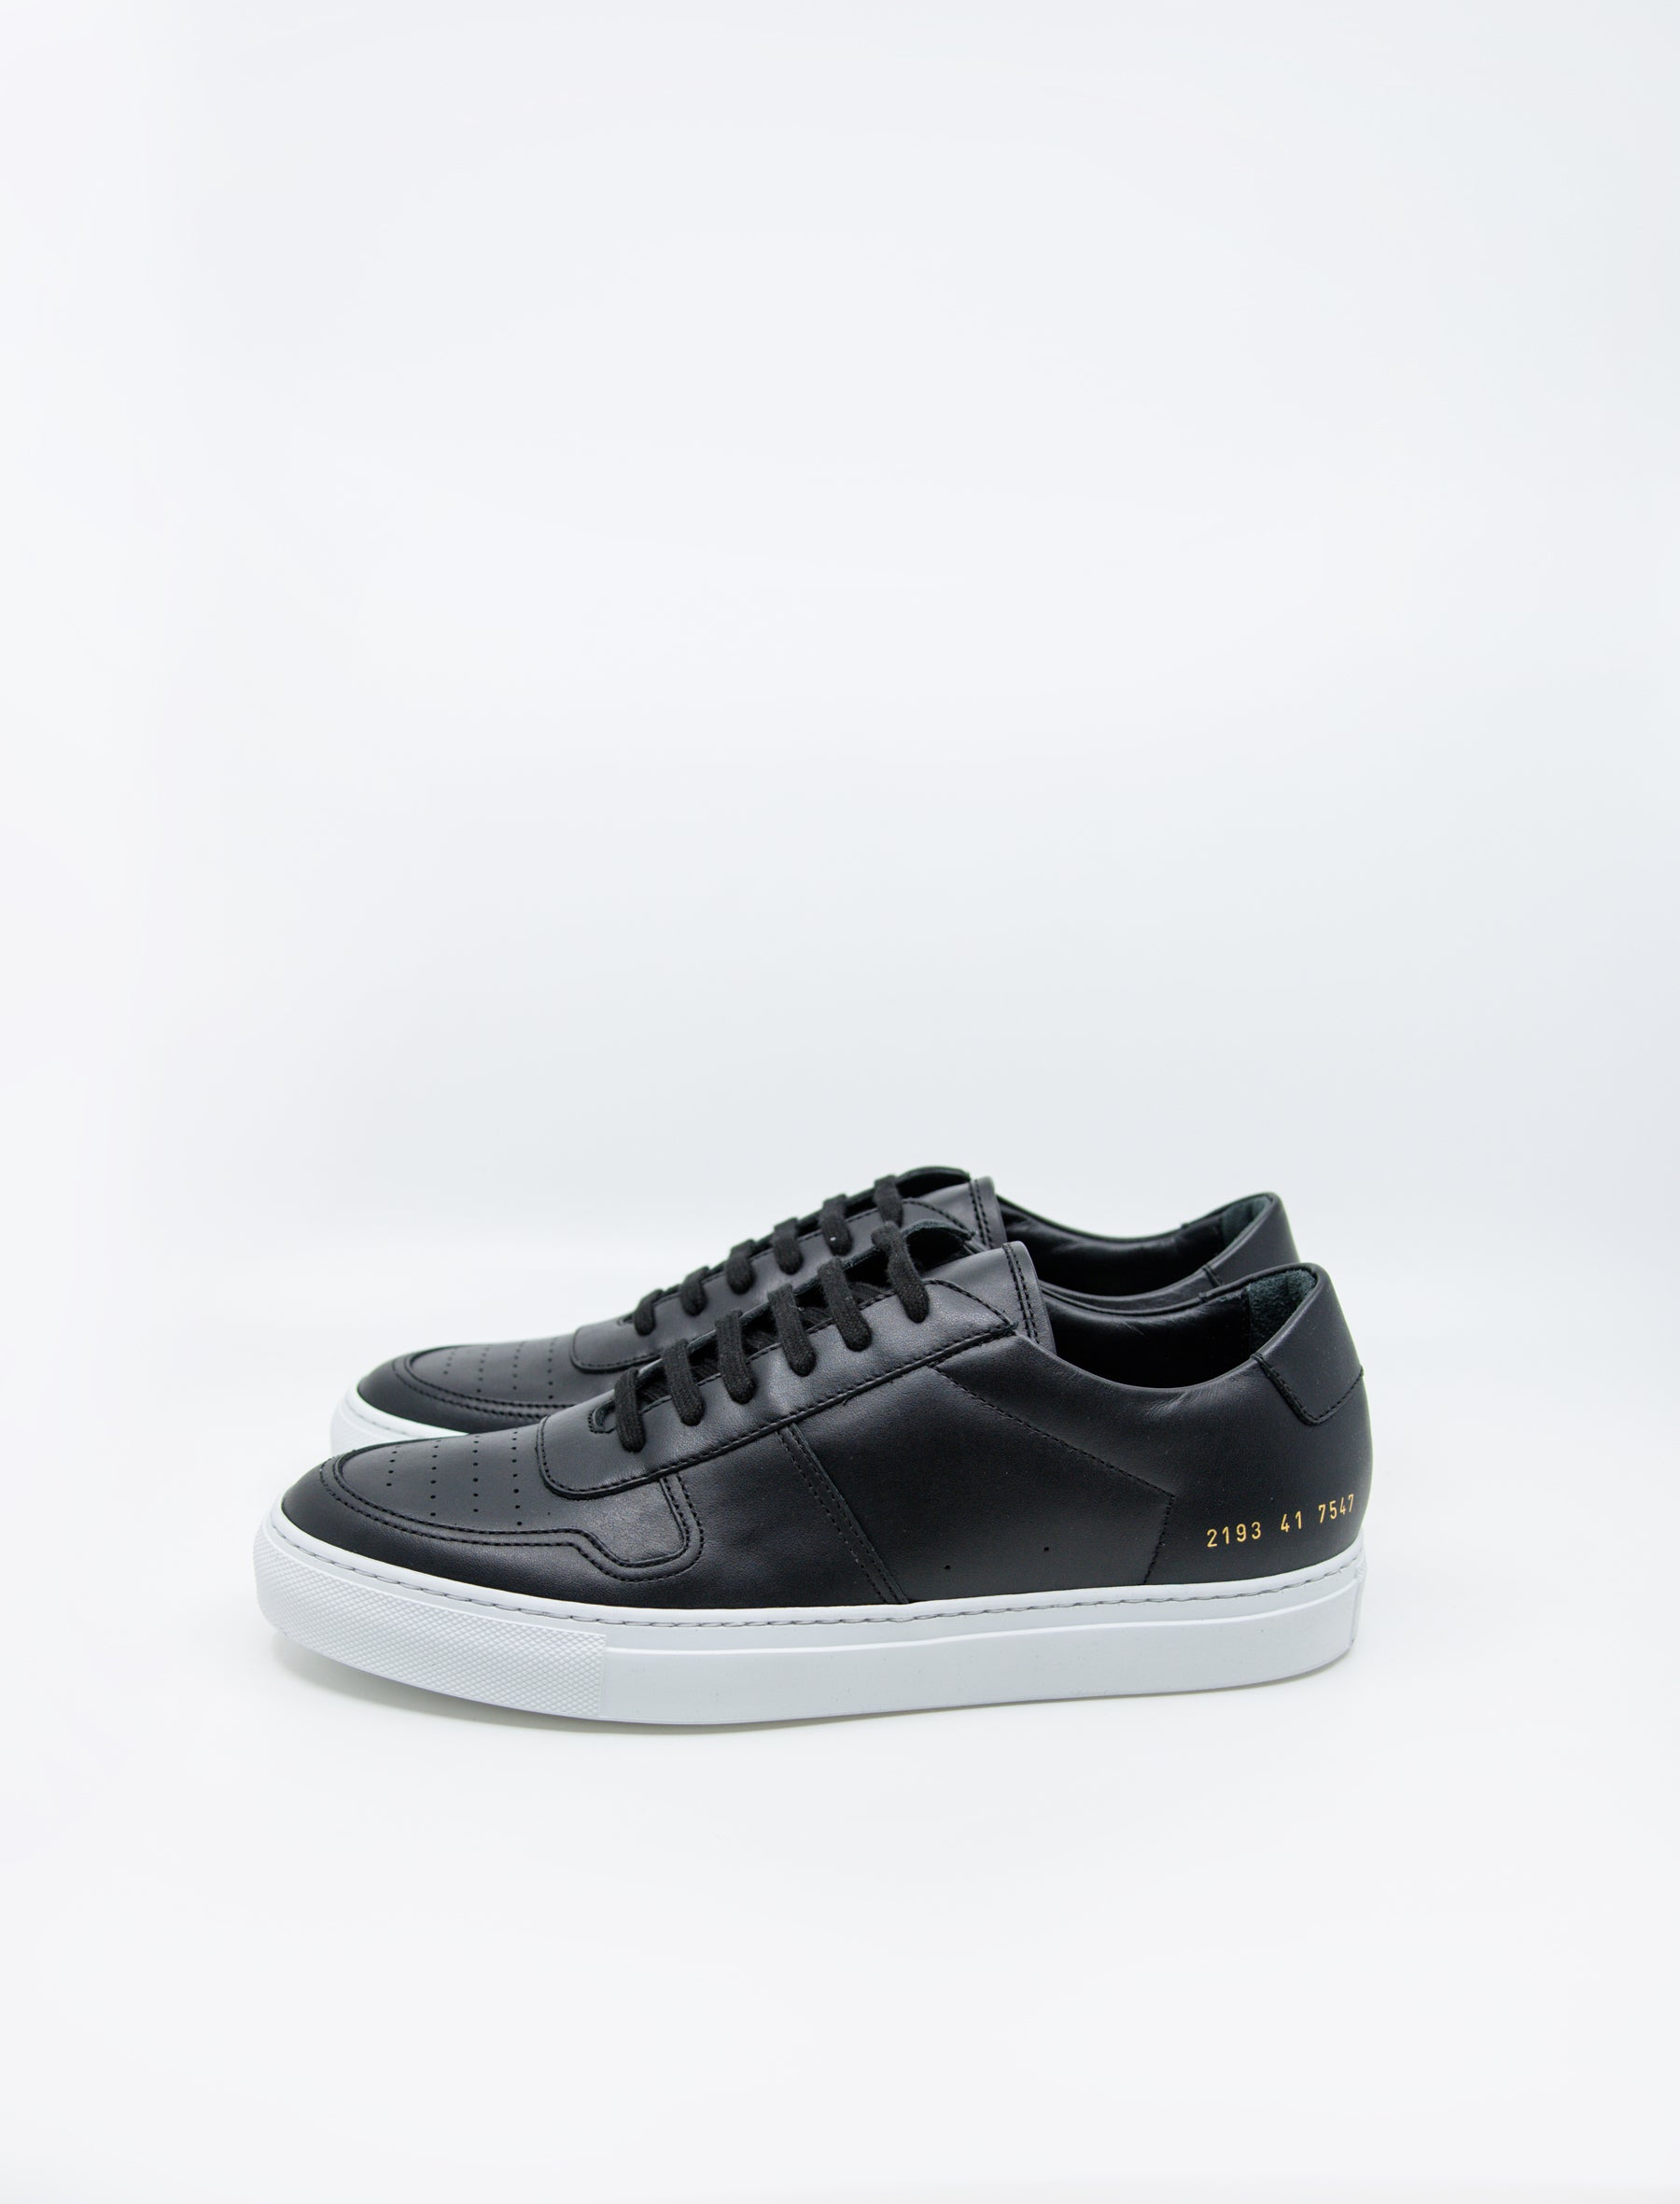 abae549f60533 ... Common Projects Bball Low Black White ...